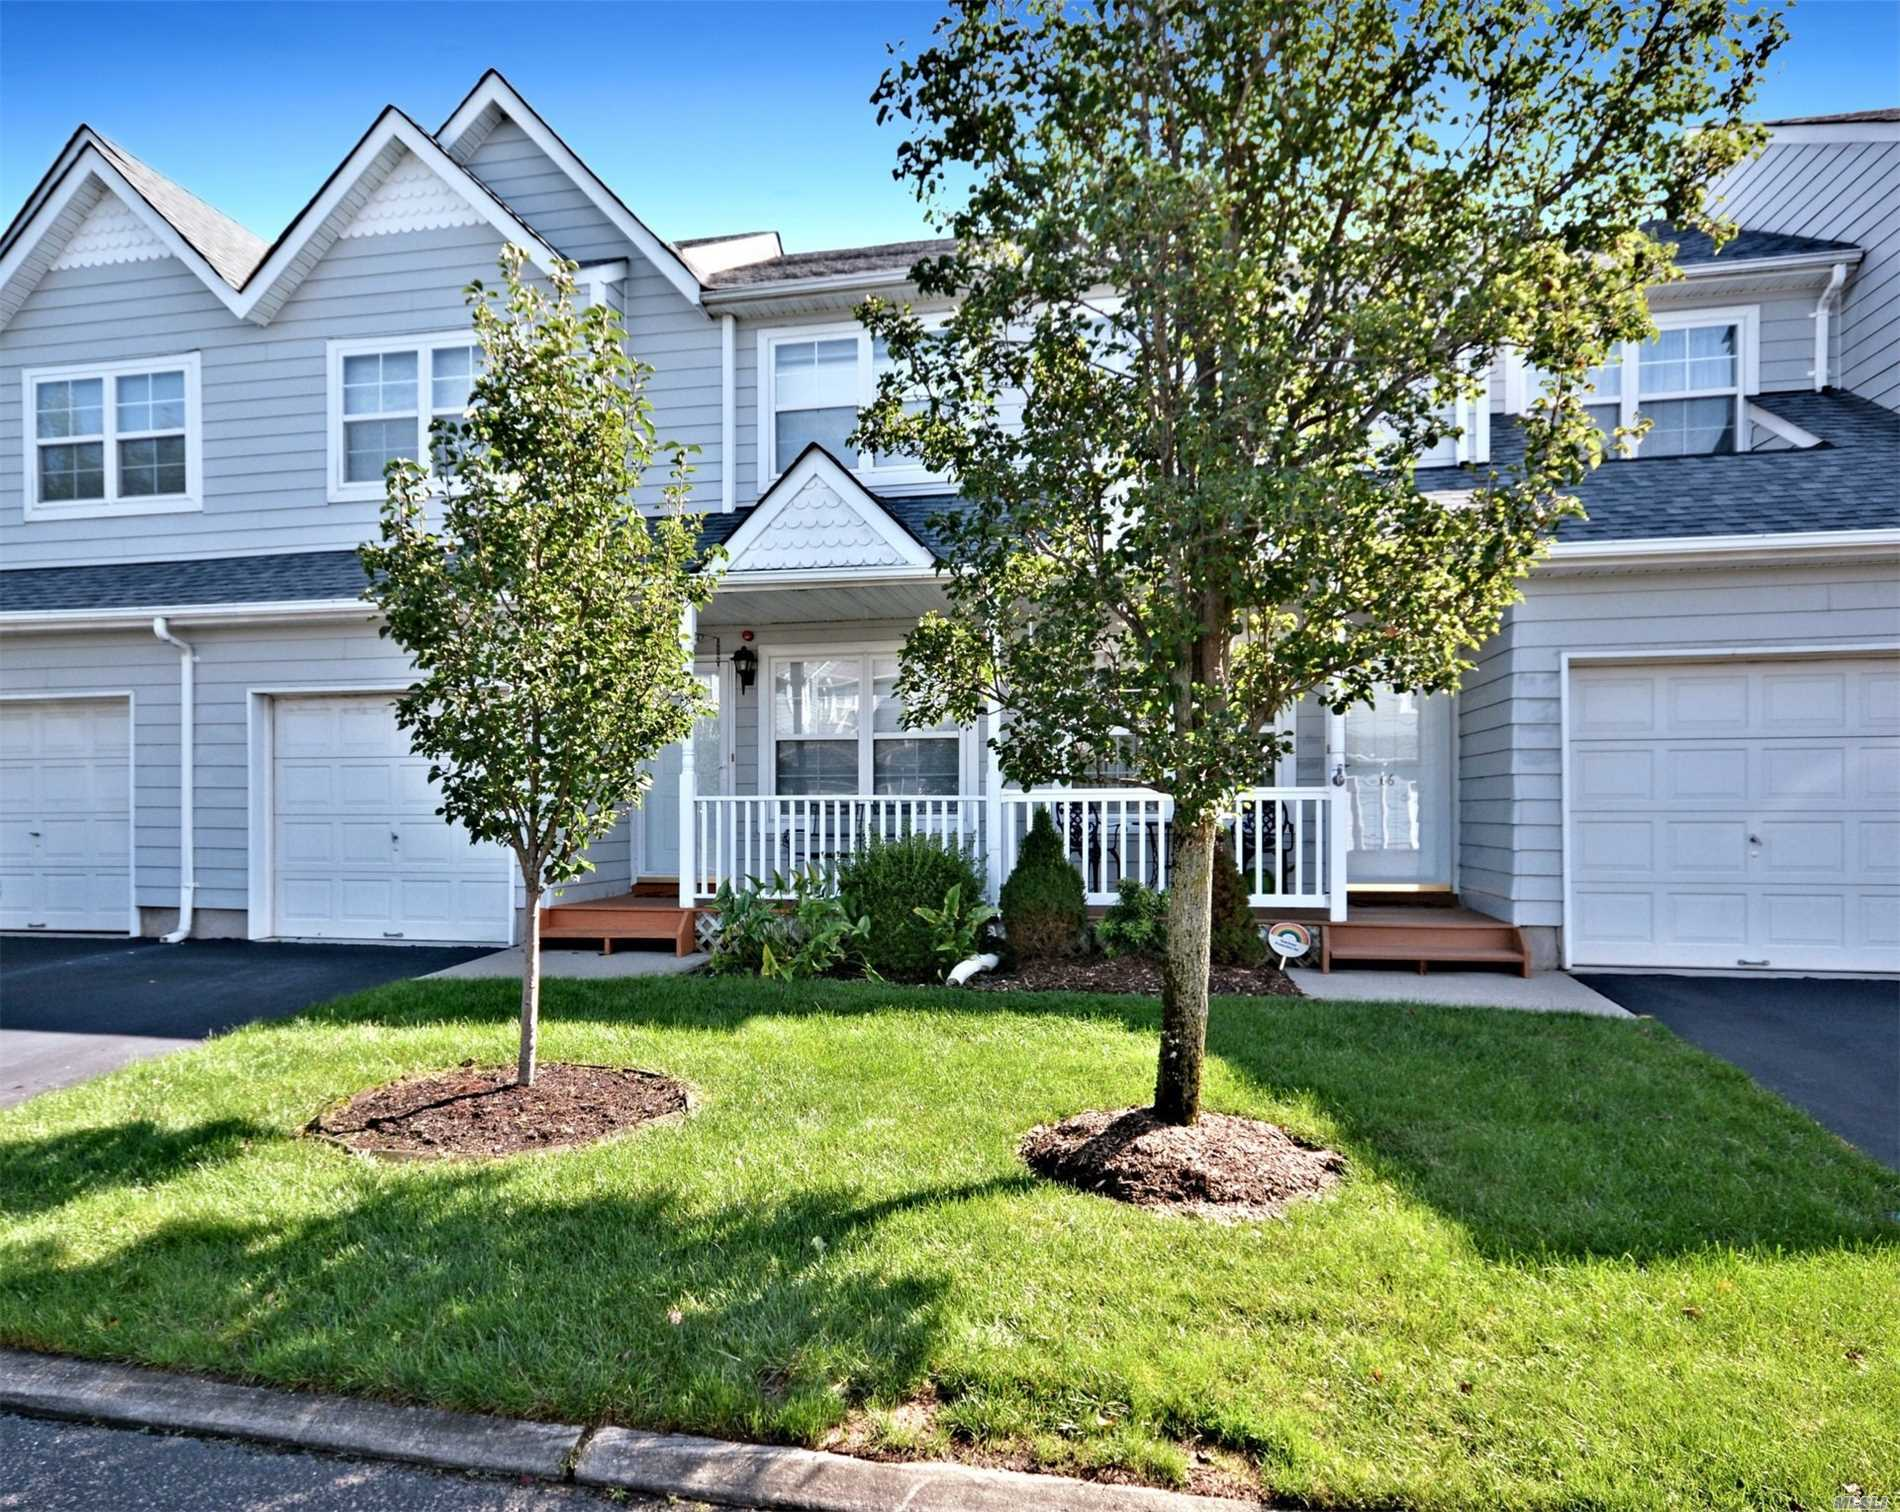 Property for sale at 68 Pleasantview Dr, Central Islip,  NY 11722